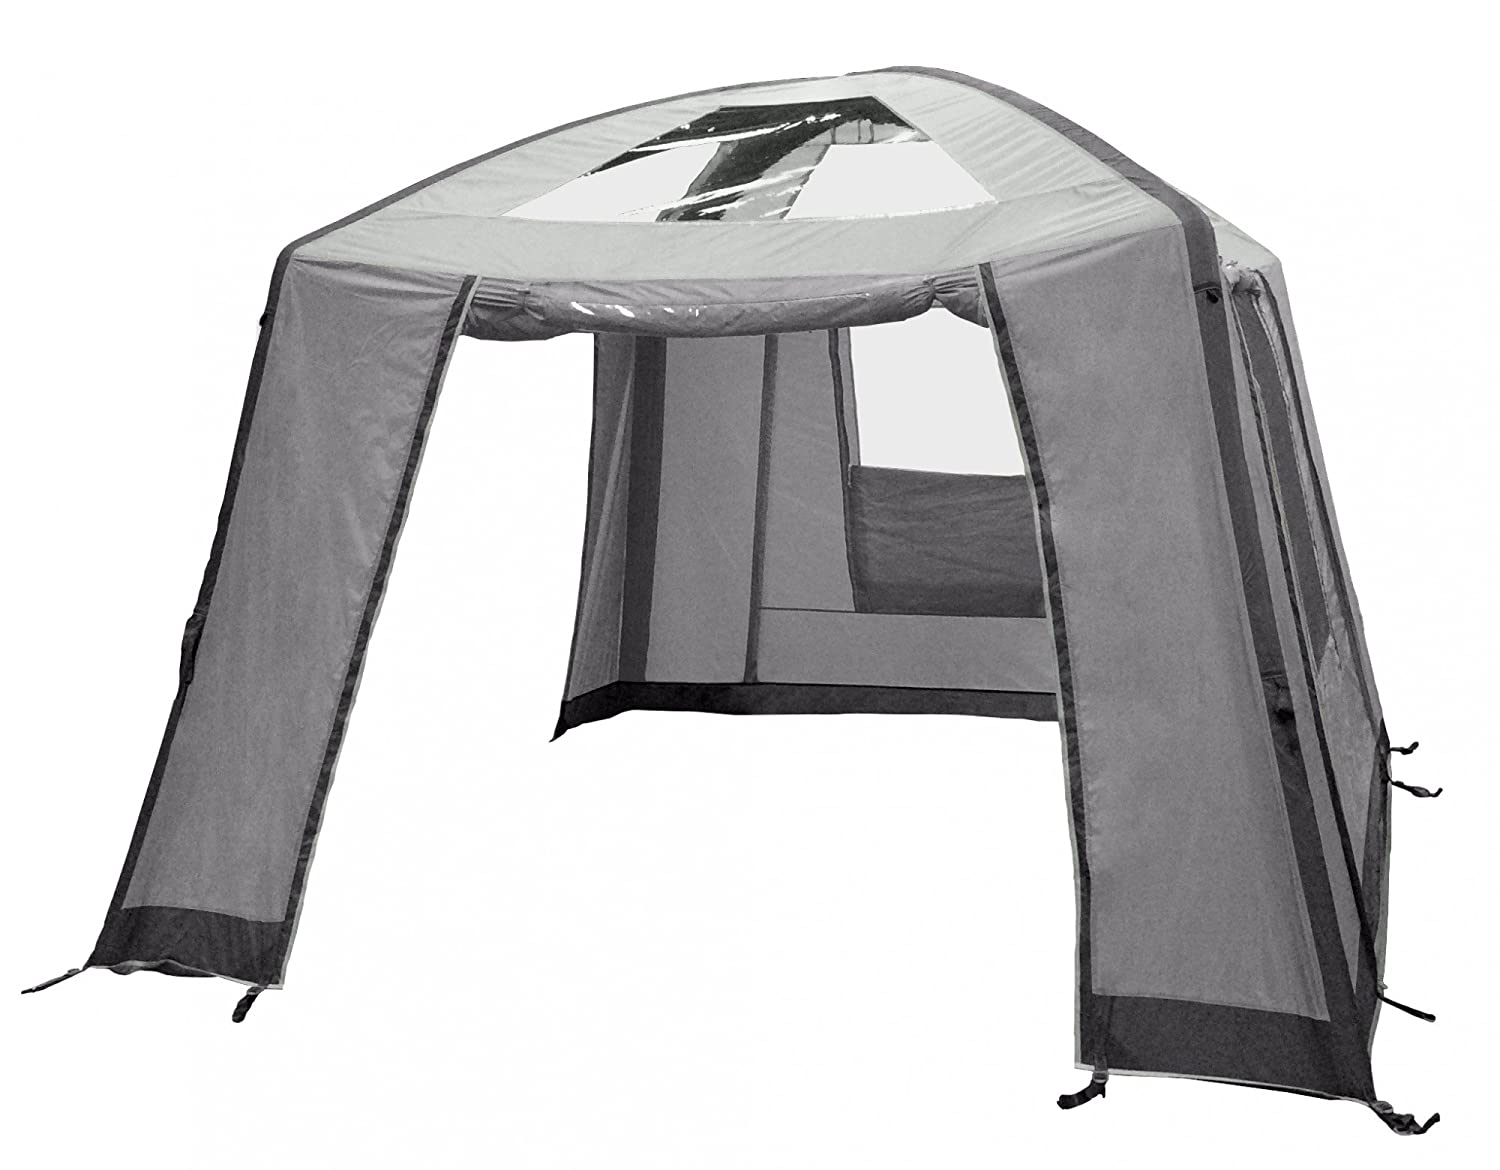 vango air hub cloud grey one size vielseitiges camping pavillon vorzelt g nstig online kaufen. Black Bedroom Furniture Sets. Home Design Ideas